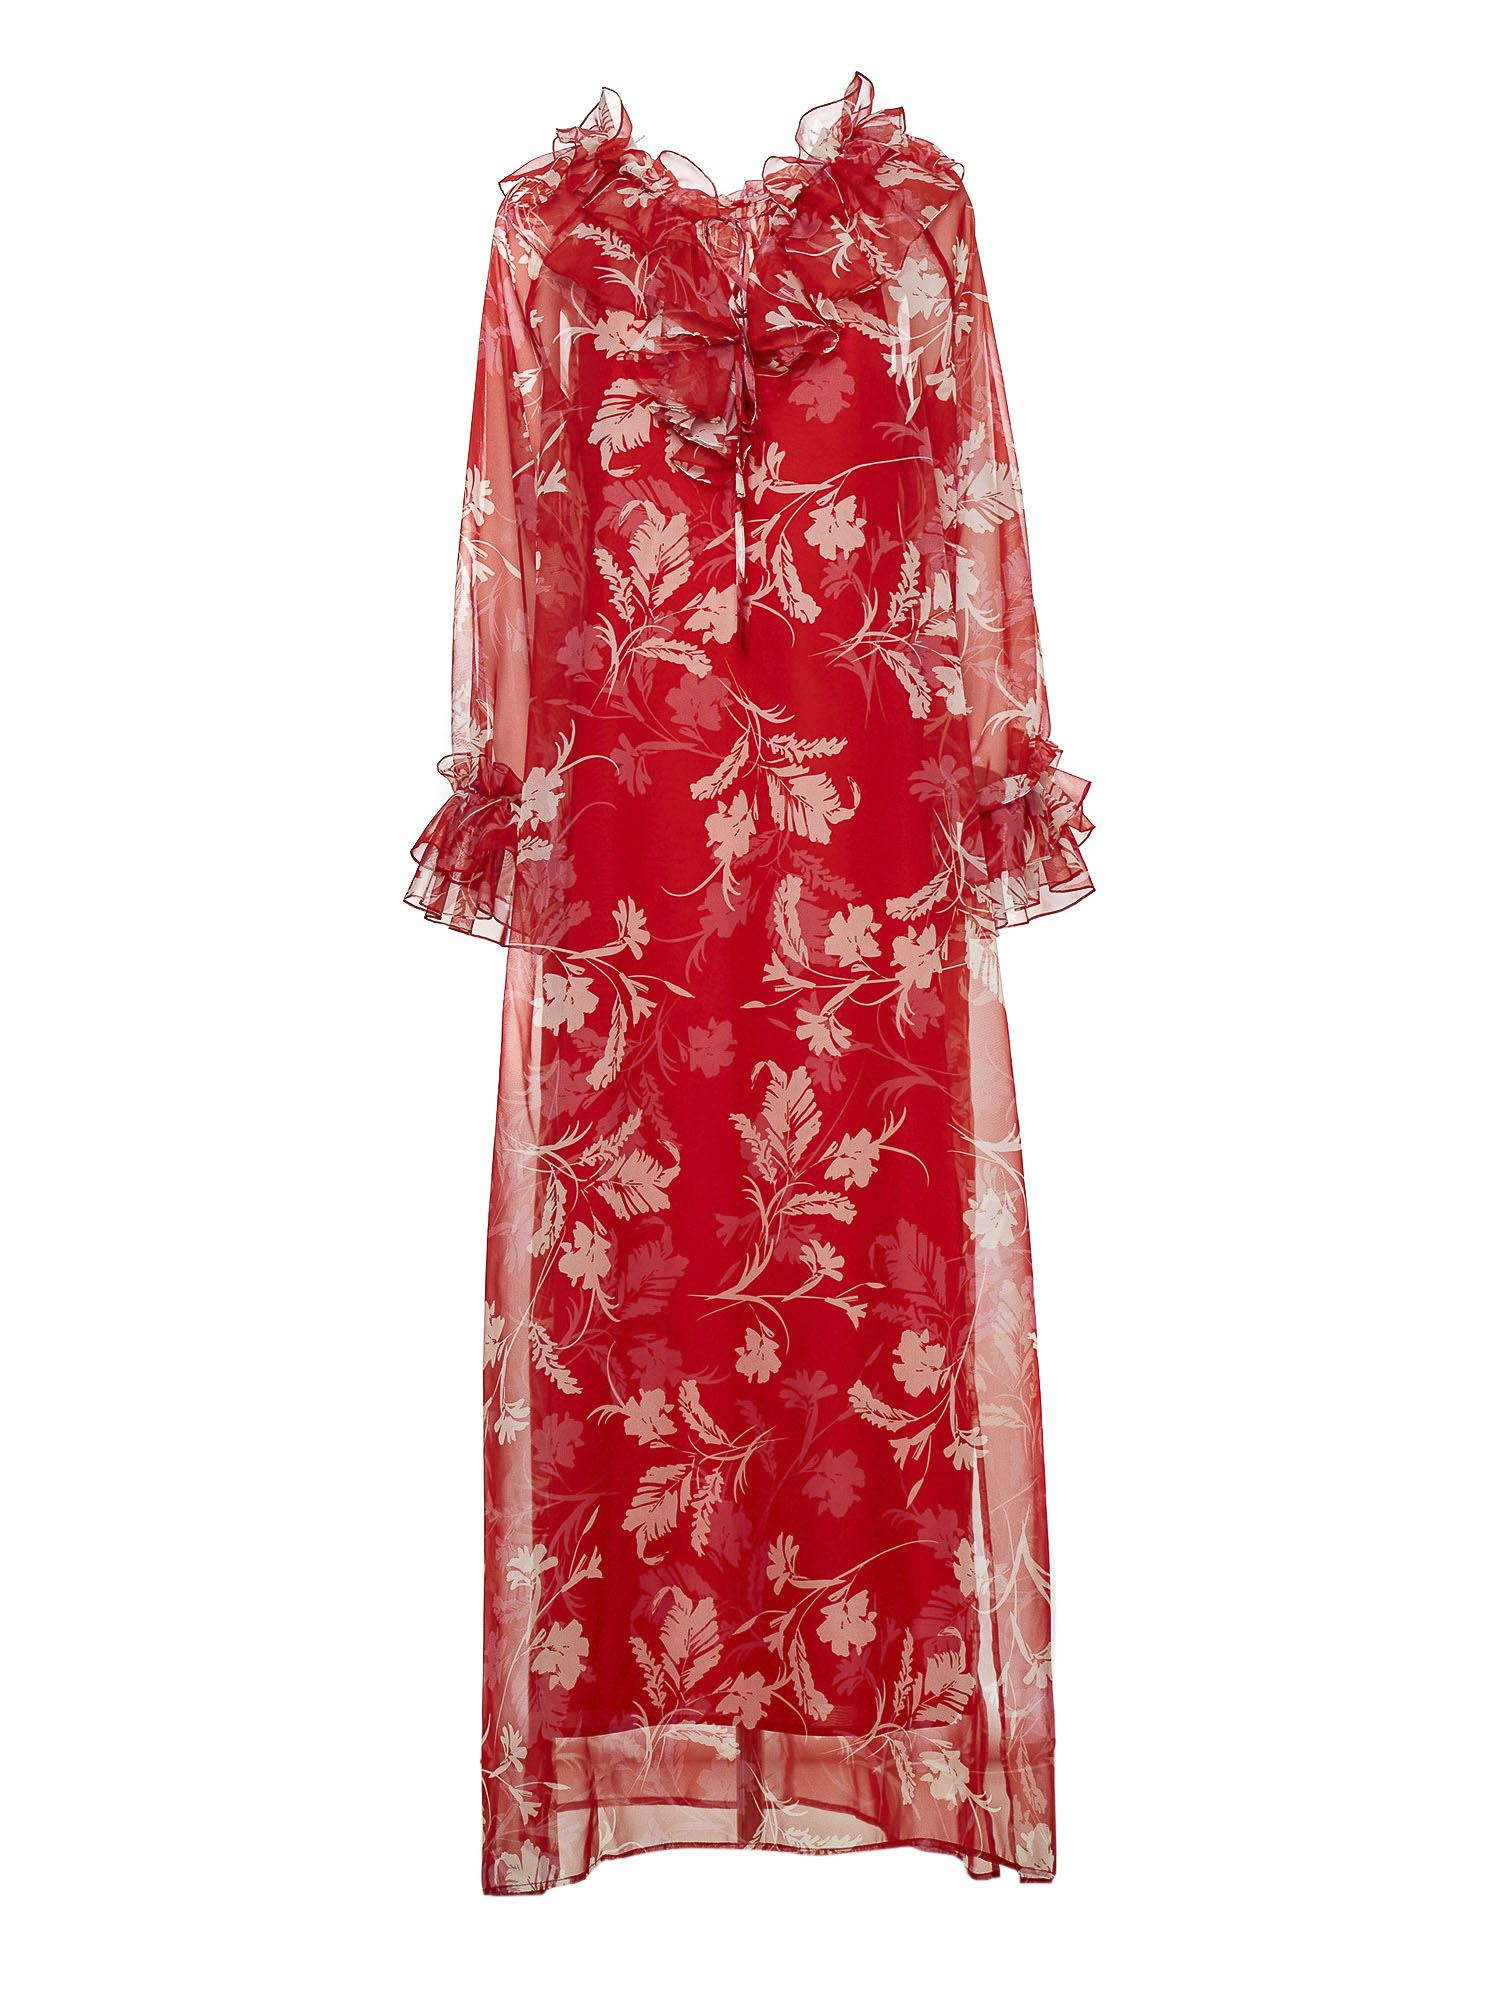 P.a.r.o.s.h. Clothing FLORAL DRESS IN RED